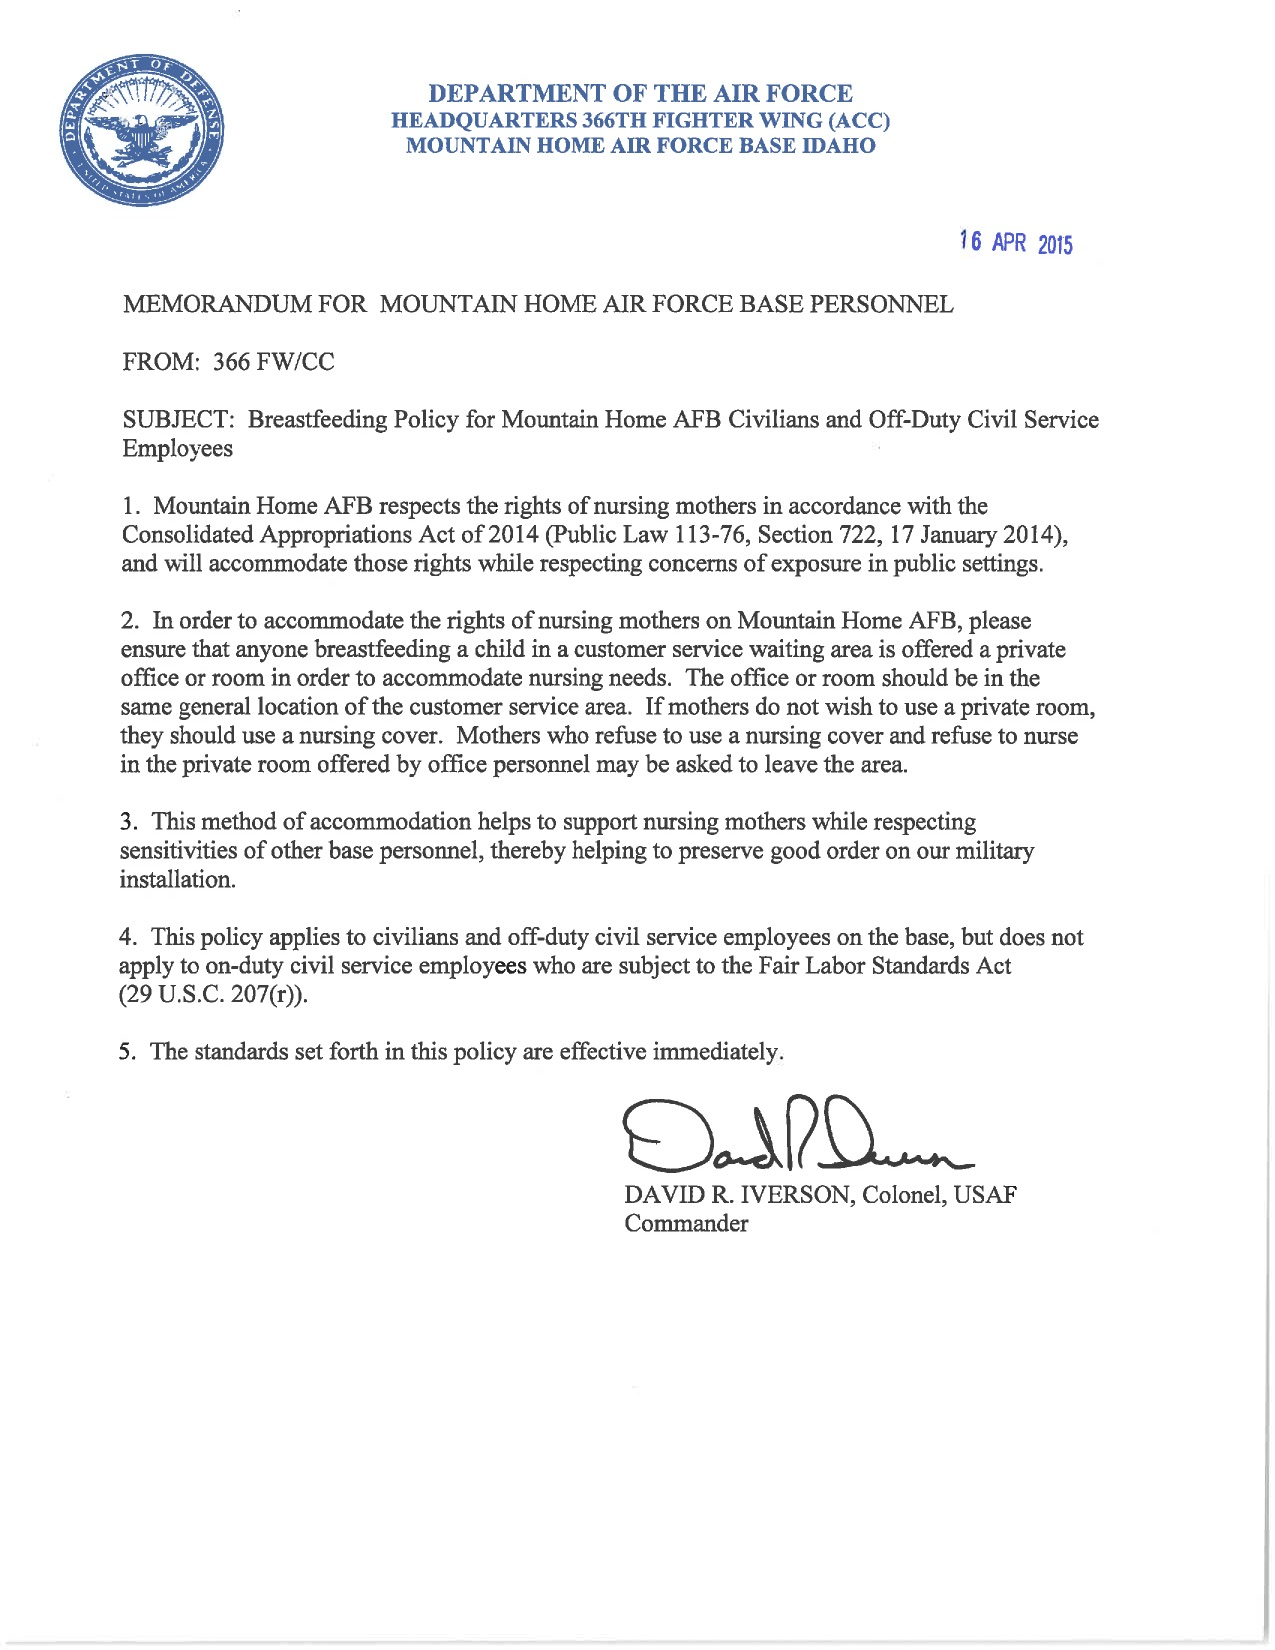 Mountain Home Air Force Base Breastfeeding policy memorandum